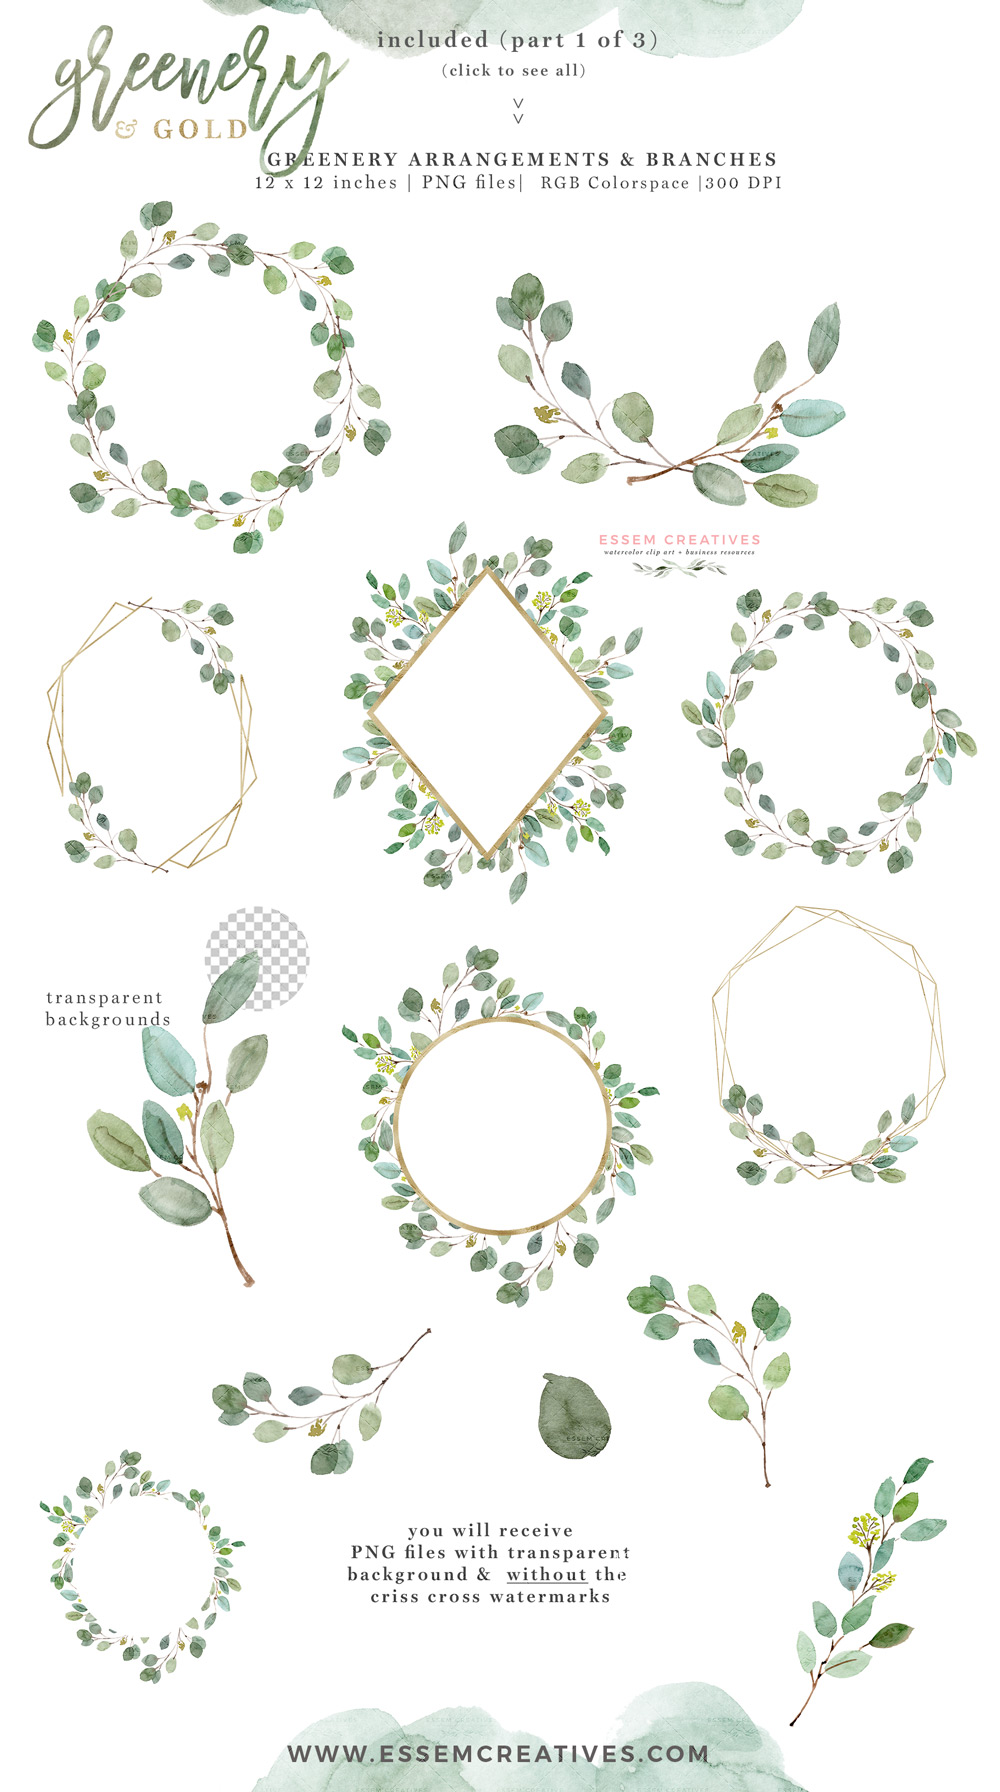 Greenery and Gold Wedding Invitation Graphics, Eucalyptus Branch Leaves  Clipart for Invitations Logo Stationery Welcome Signs.